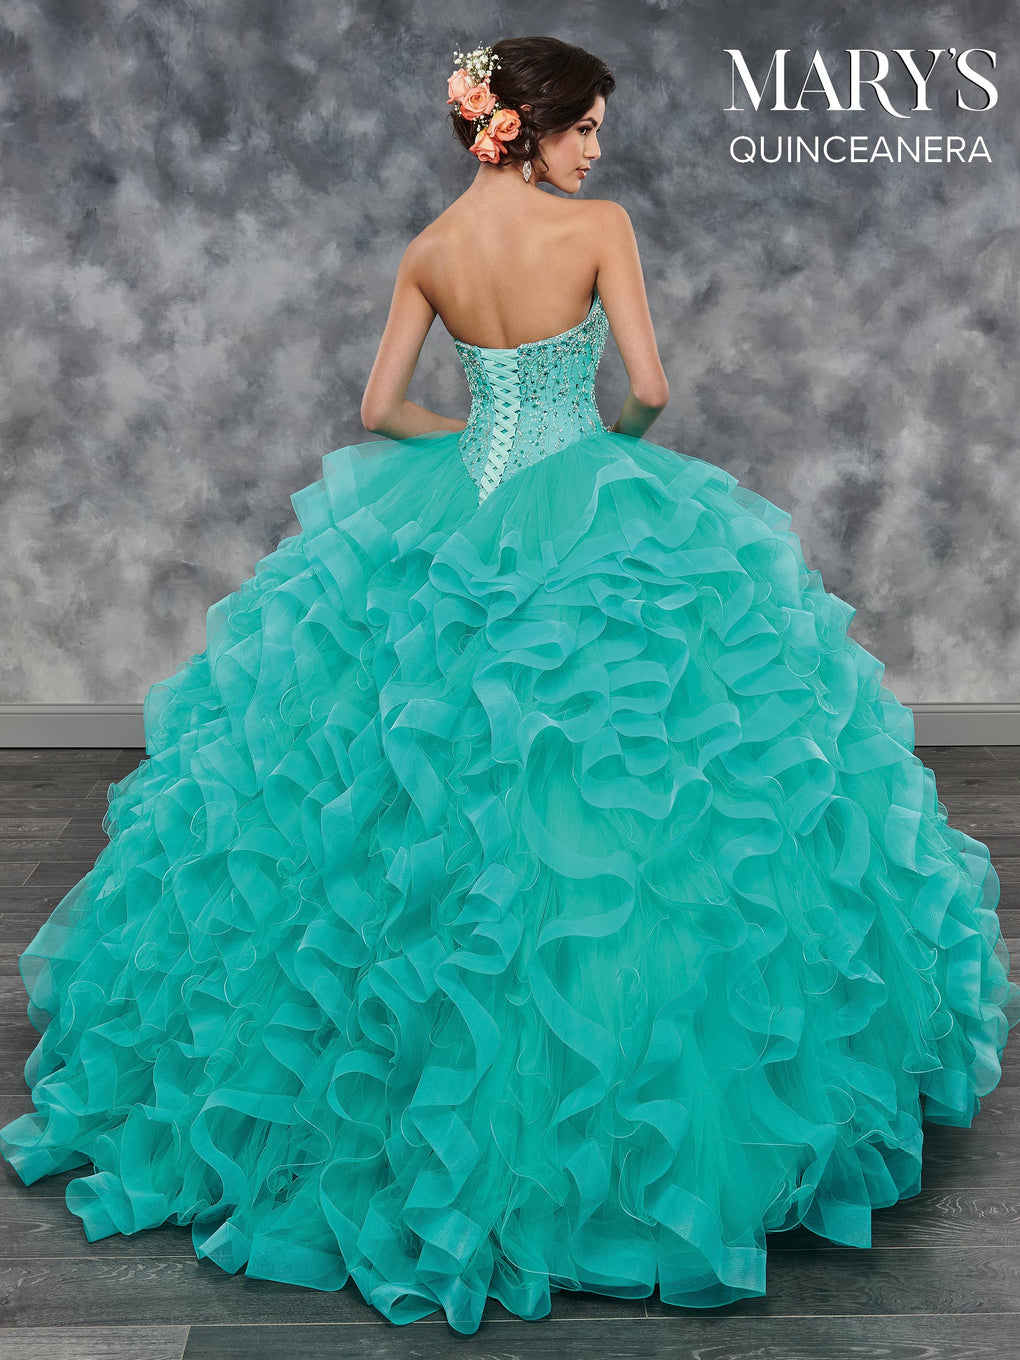 Marys Quinceanera Dresses in Champagne, Burgundy, Light Jade, or White Color